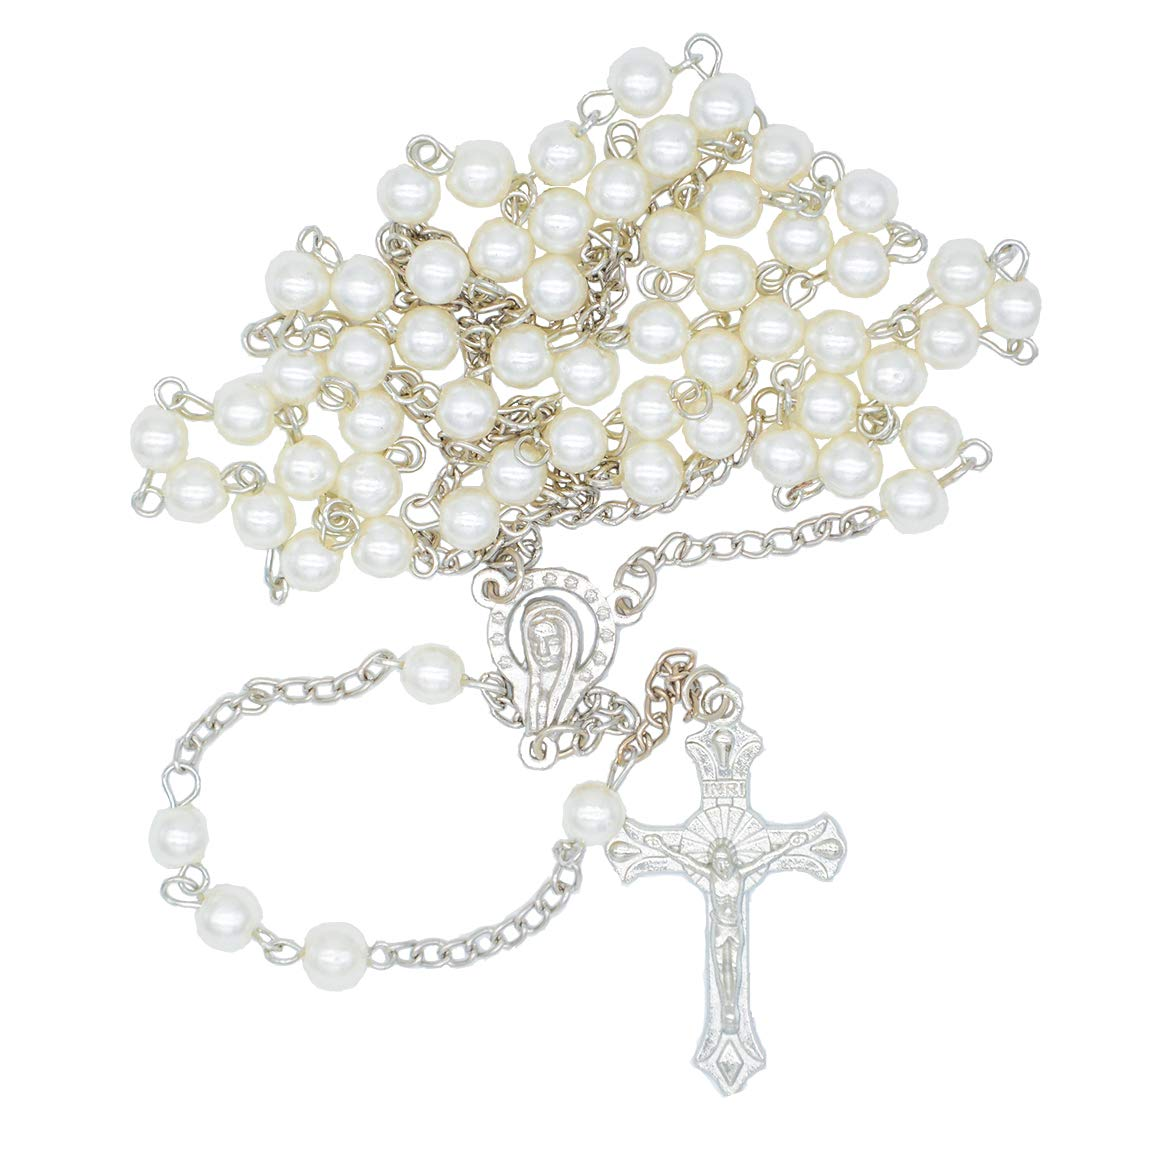 Our Father Rosary Beads Catholic Pearl Rosary Necklace.Rosary Necklace.Rosary Catholic Rosaries Catholic.